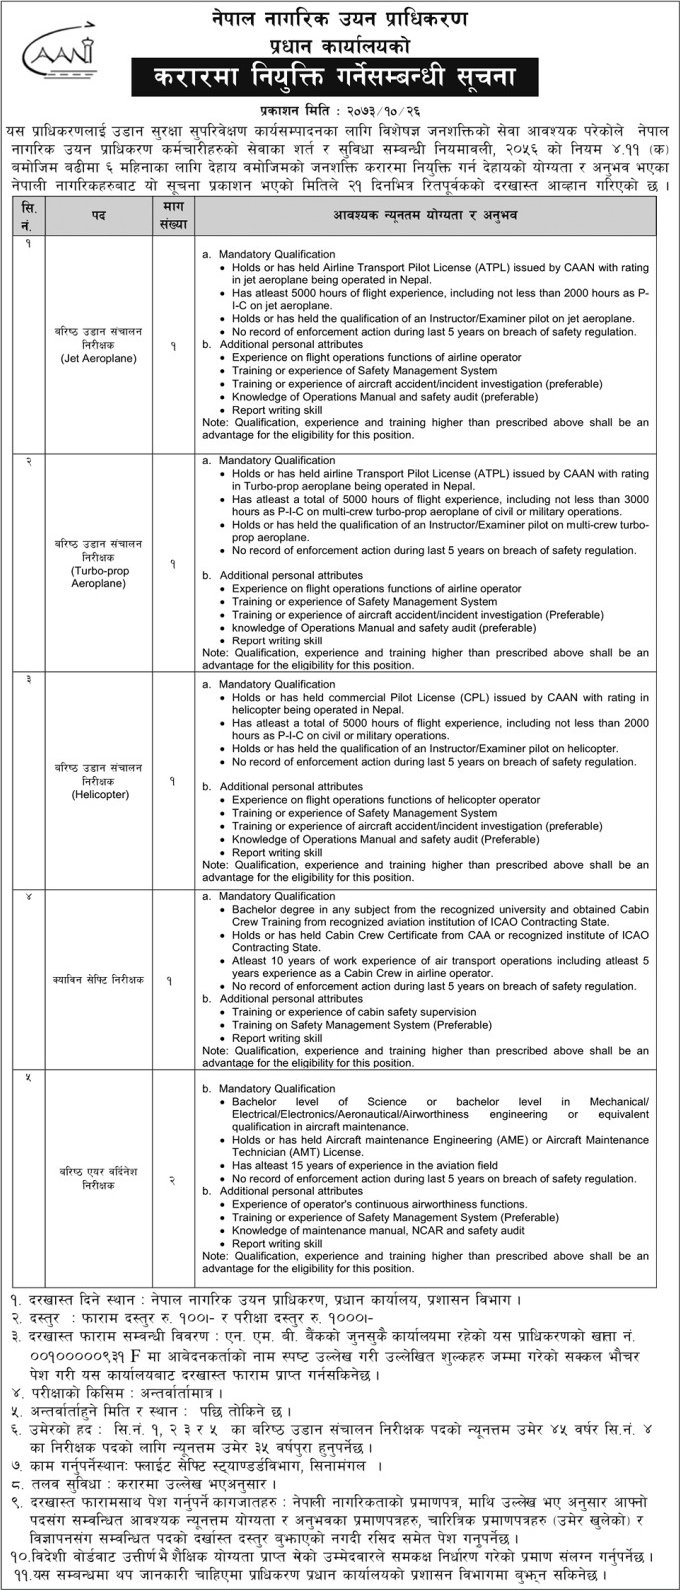 engineer jobs vacancy civil aviation authority of caan deadline to apply 28 2017